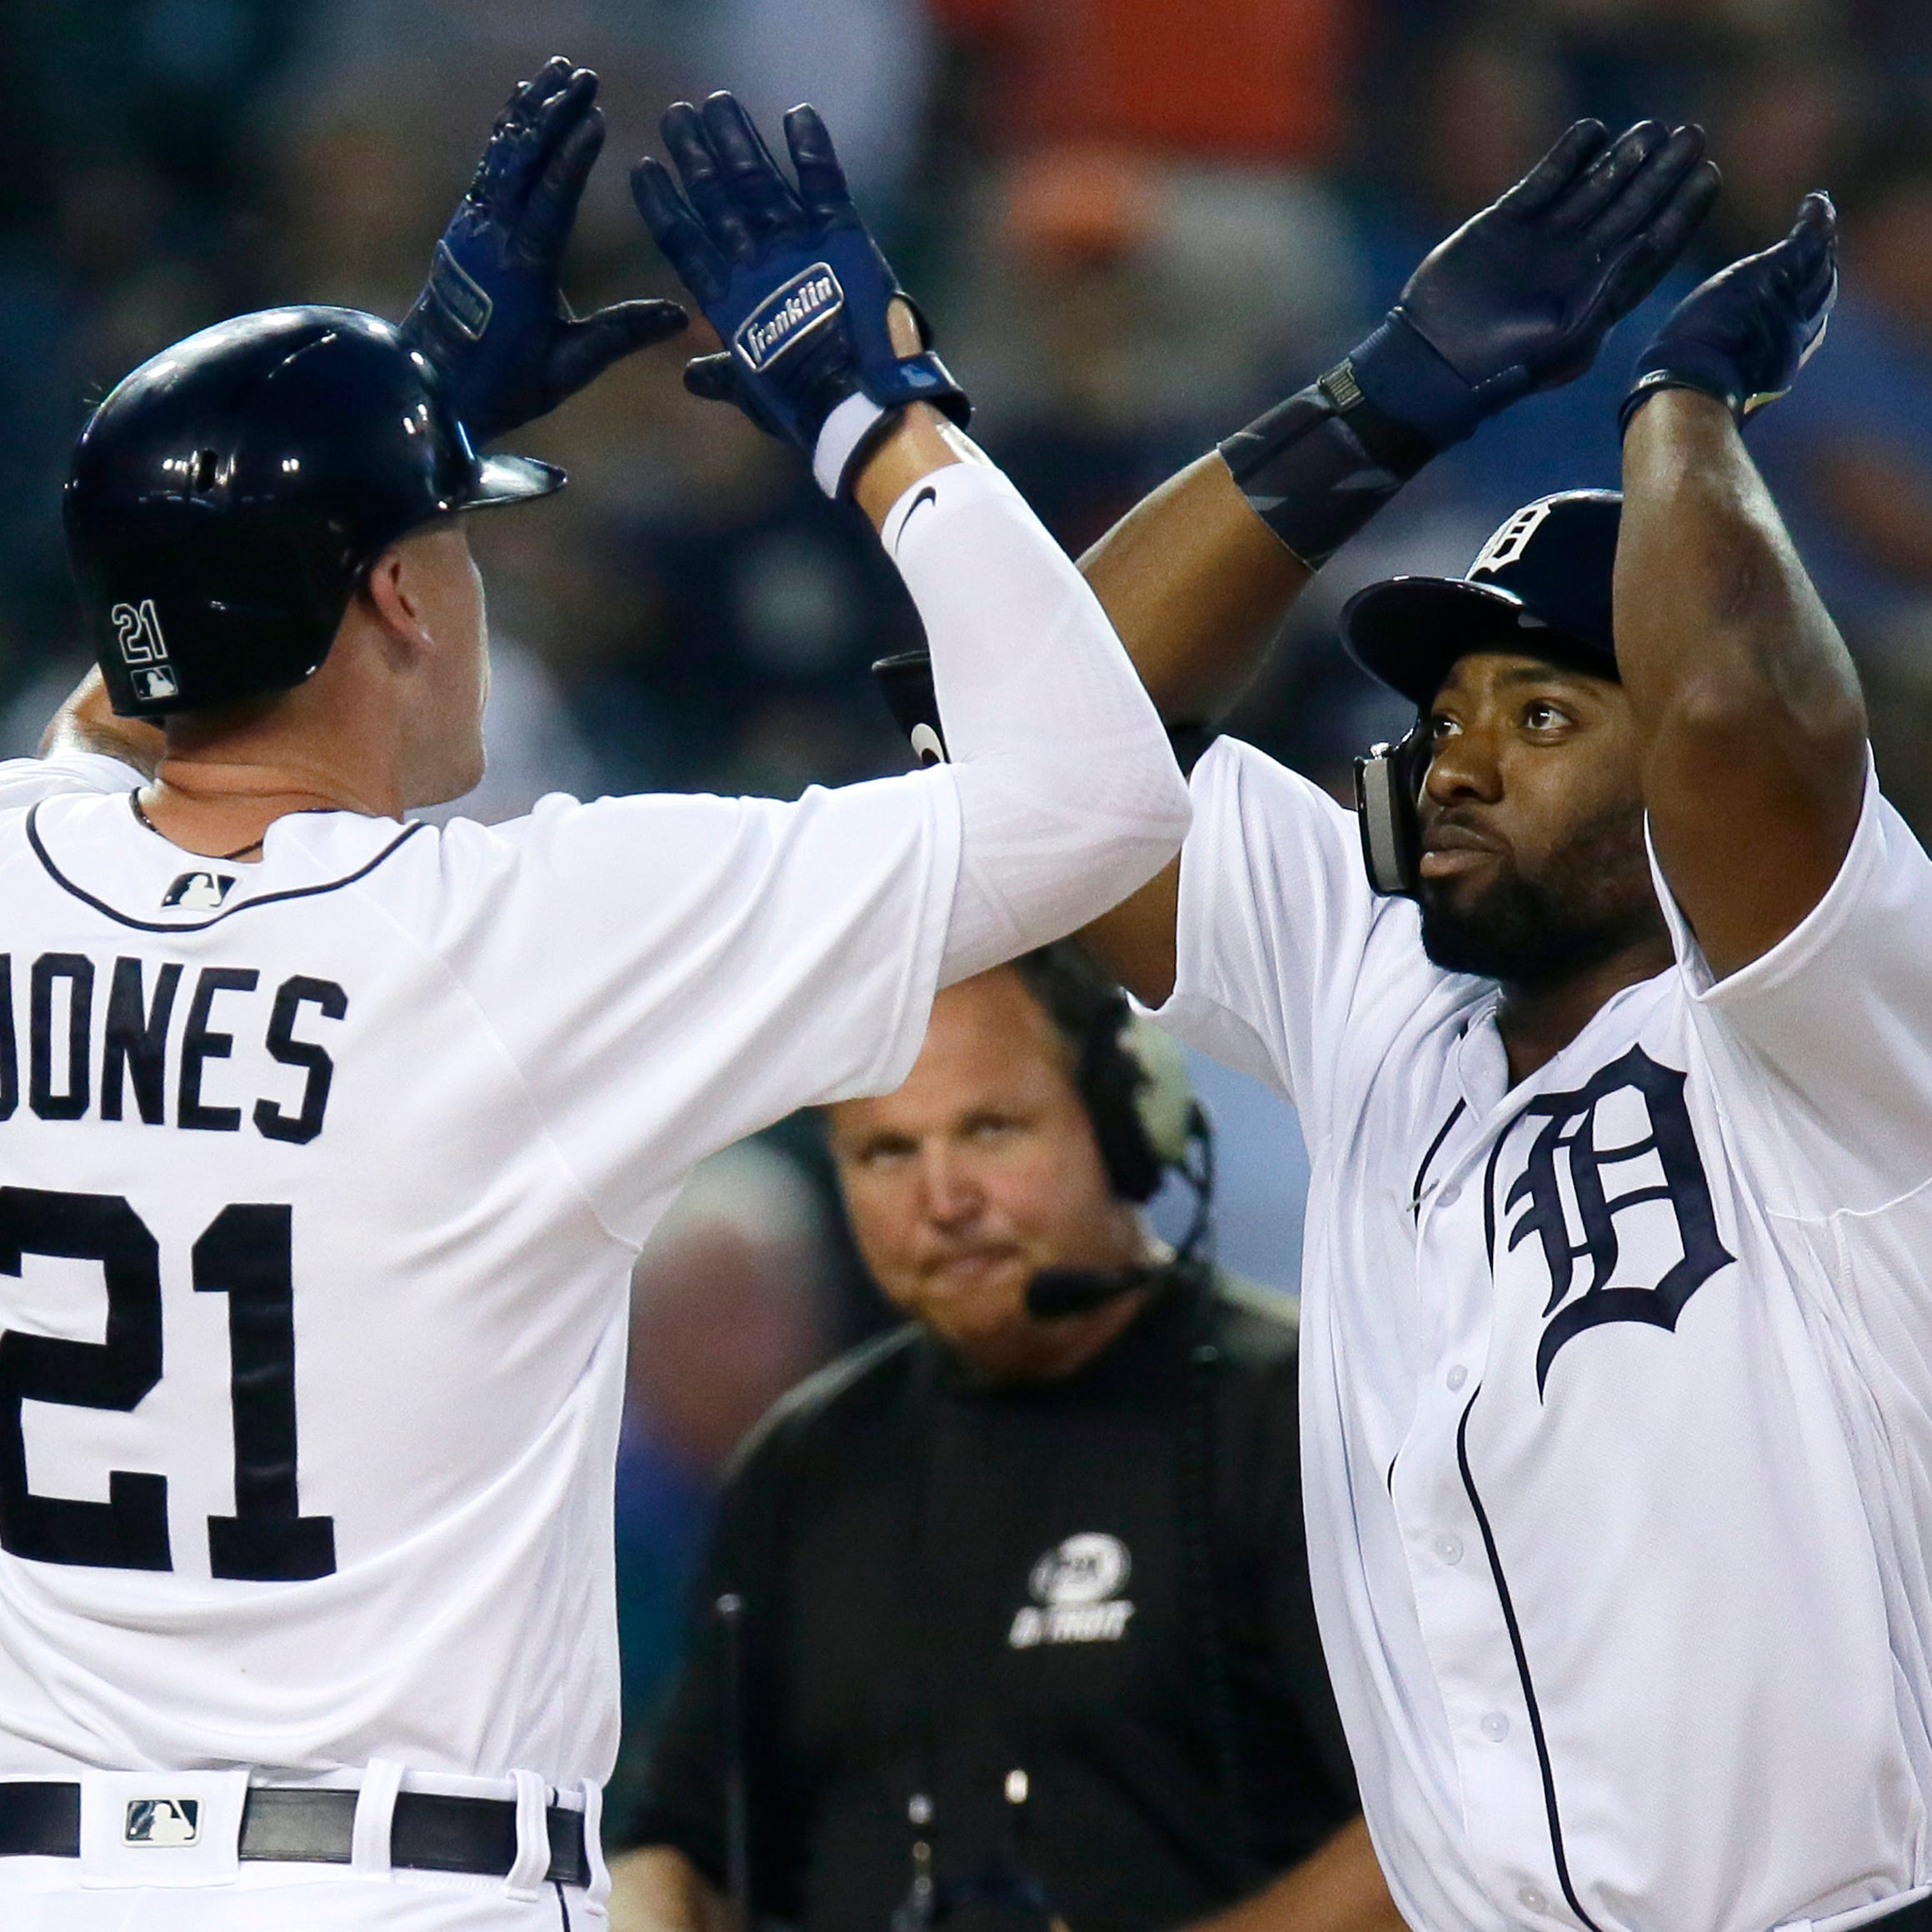 Tigers beat Royals as rookie Stewart makes first big splash